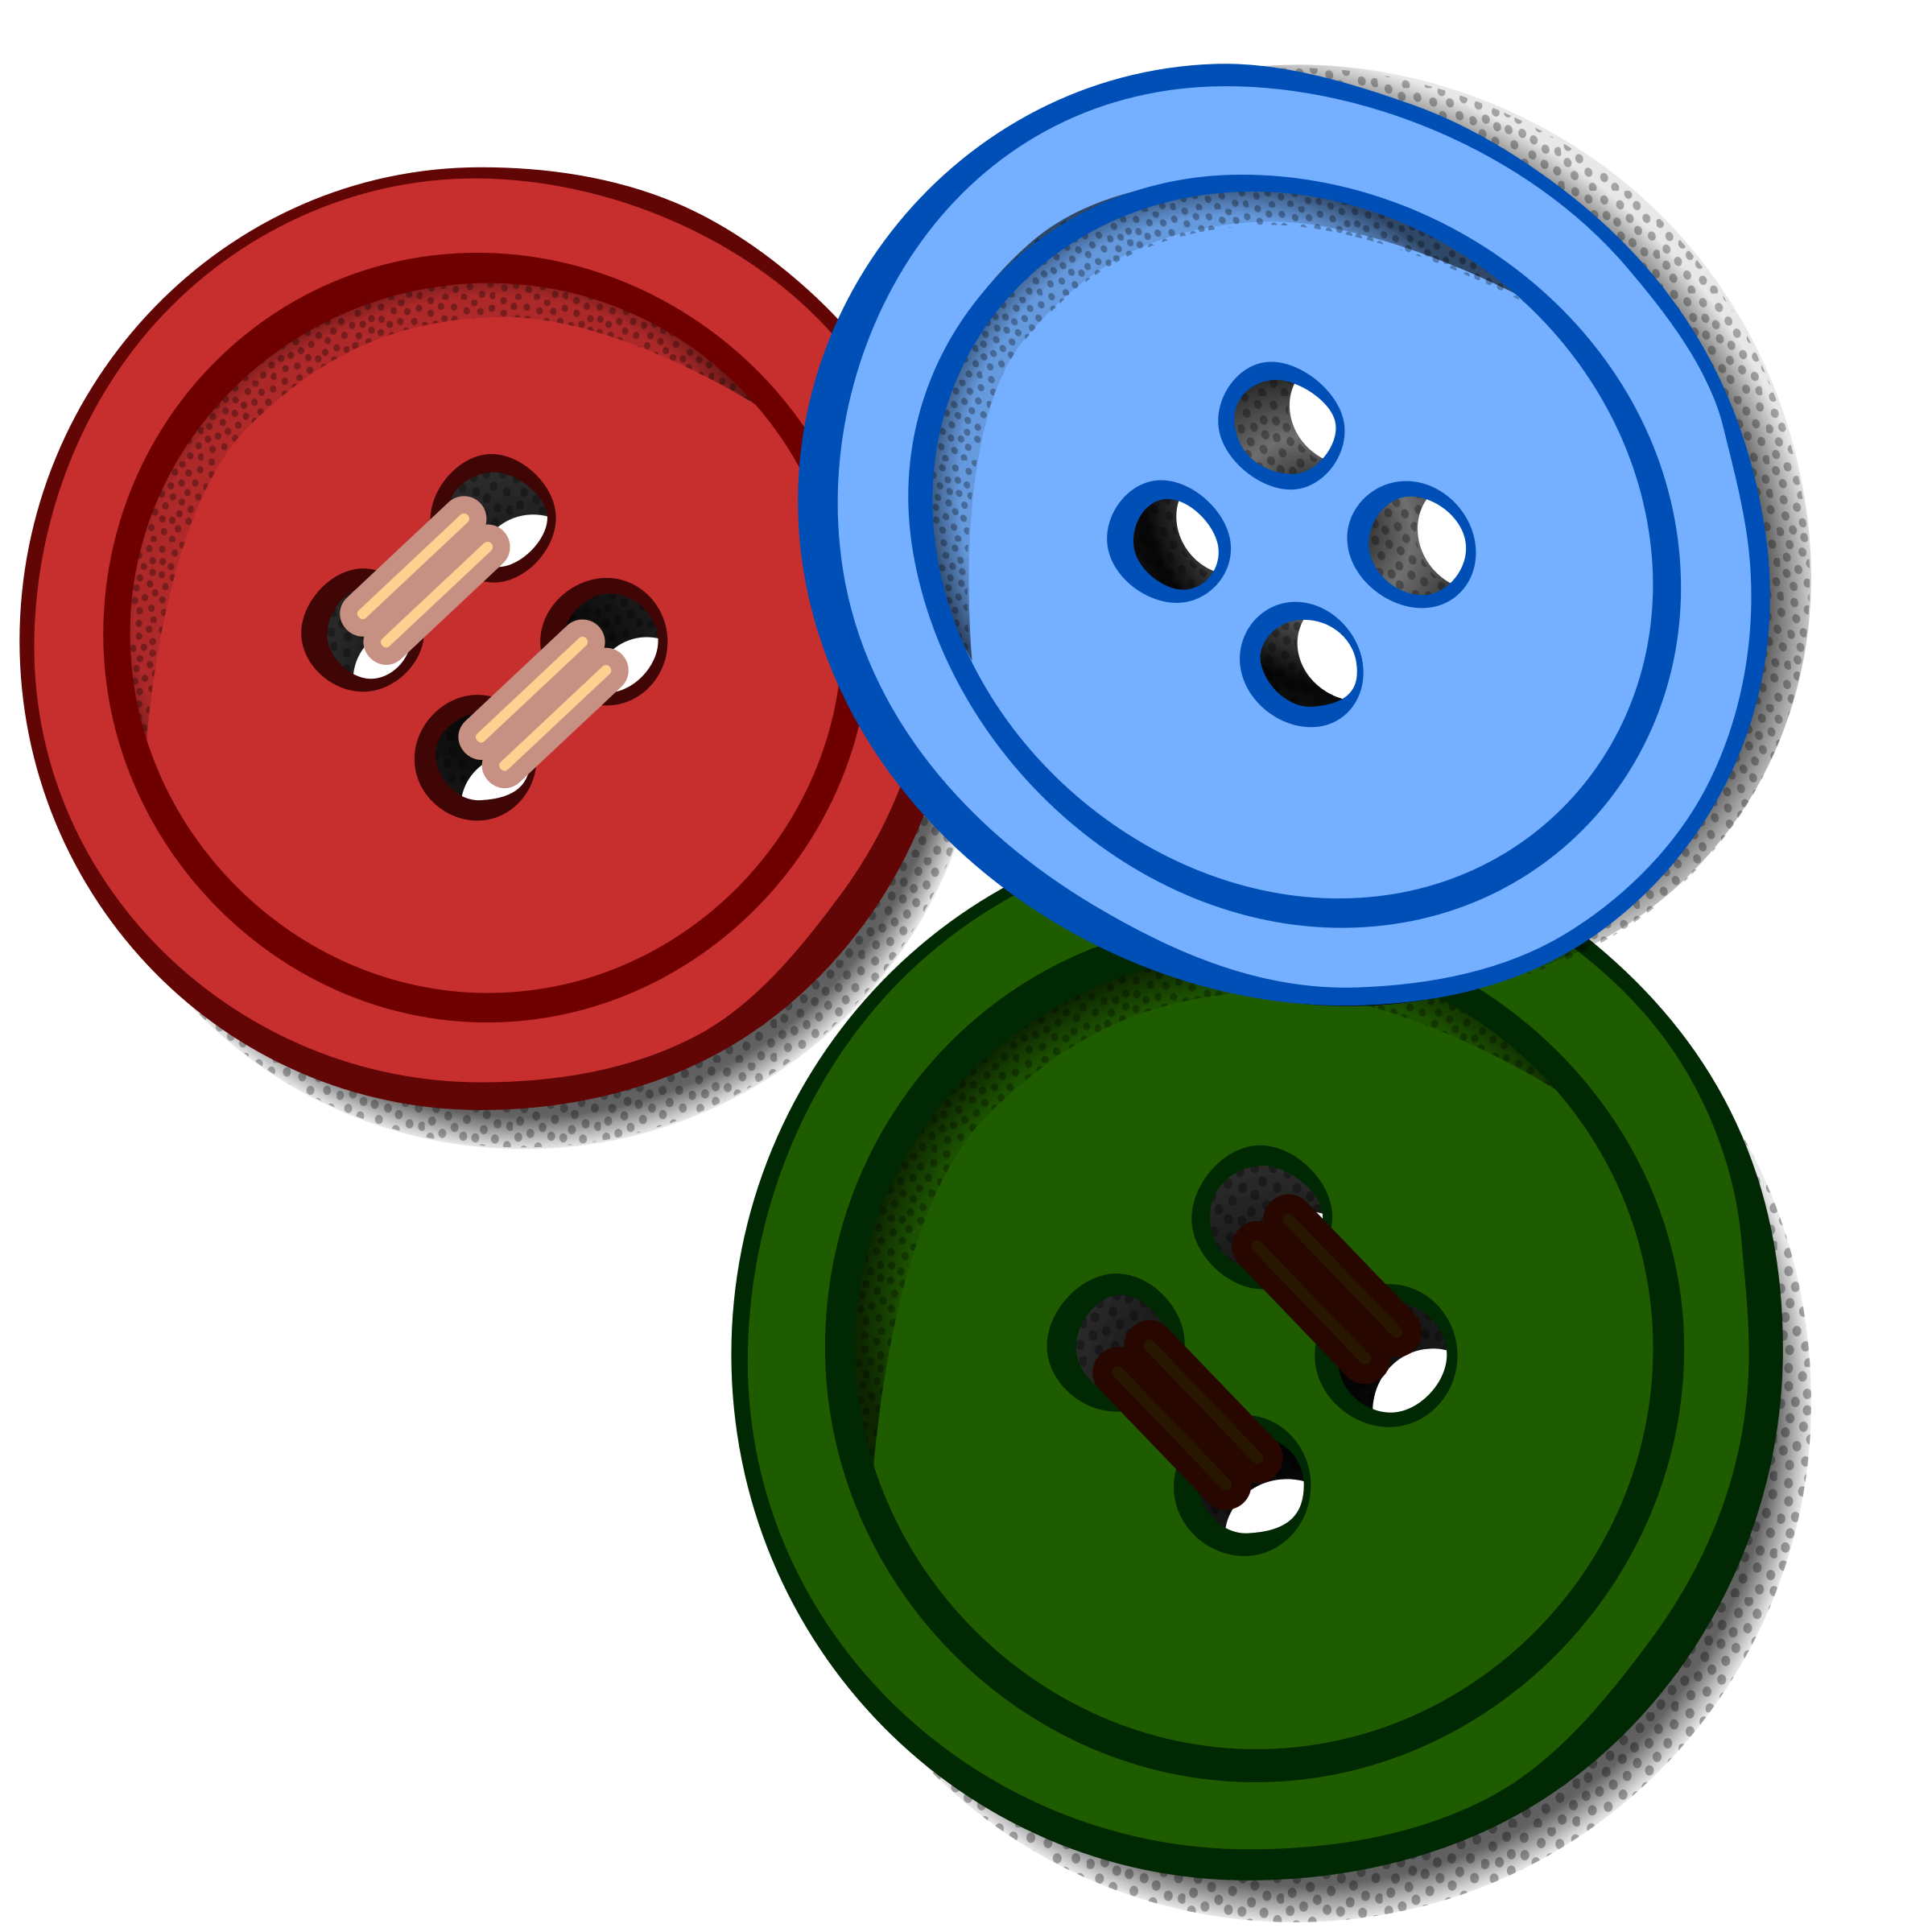 Clip button. Buttons coloured icons png clipart library library